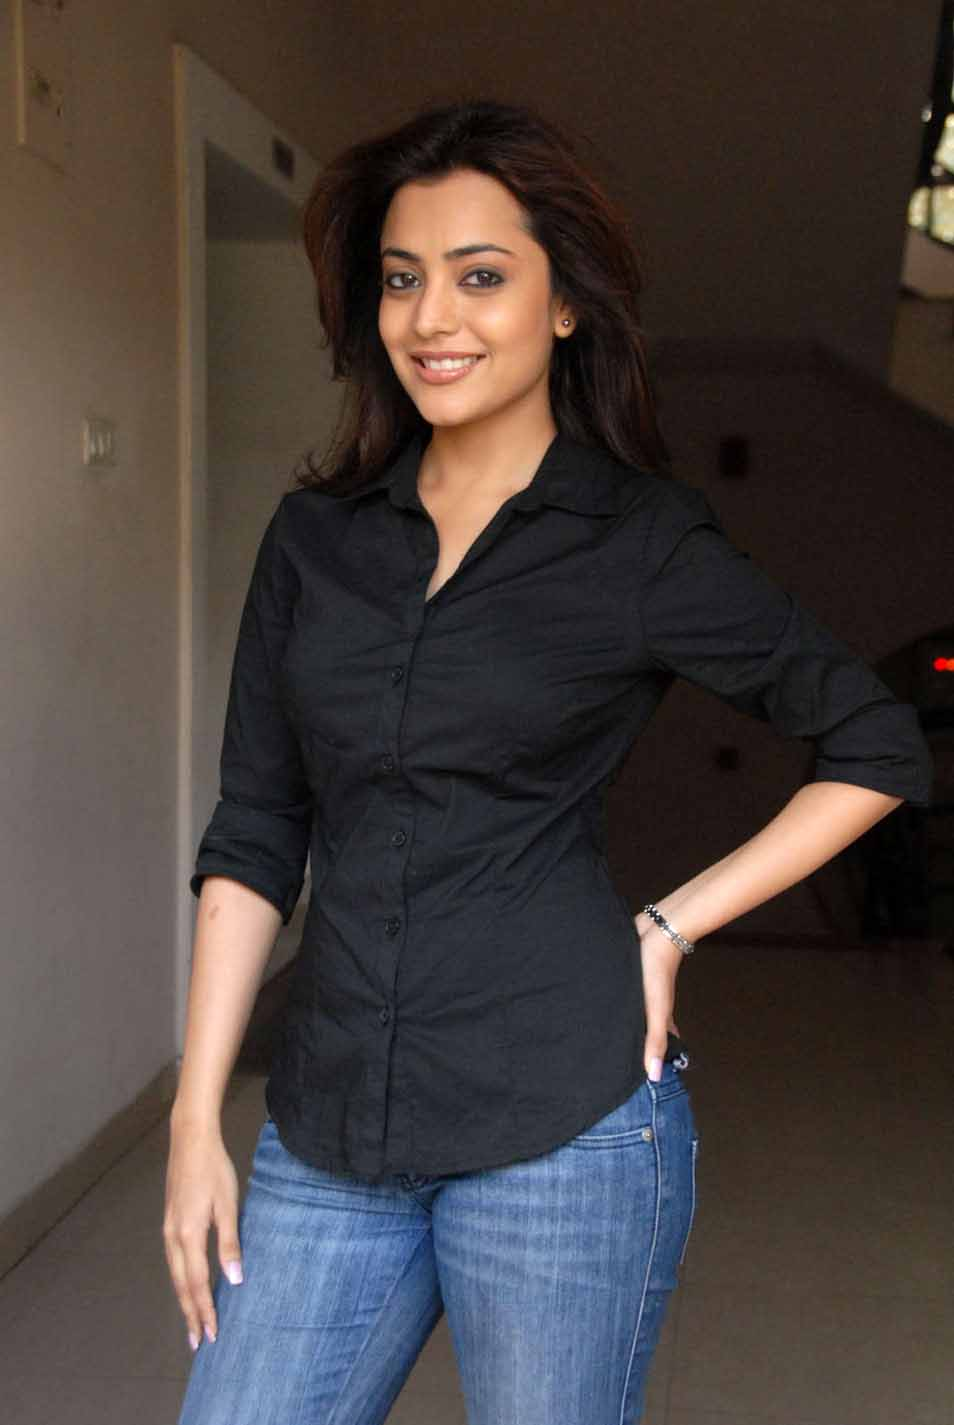 190 Nisha Agarwal Sister Of Kagal Agarwal Hot Sexy -2622